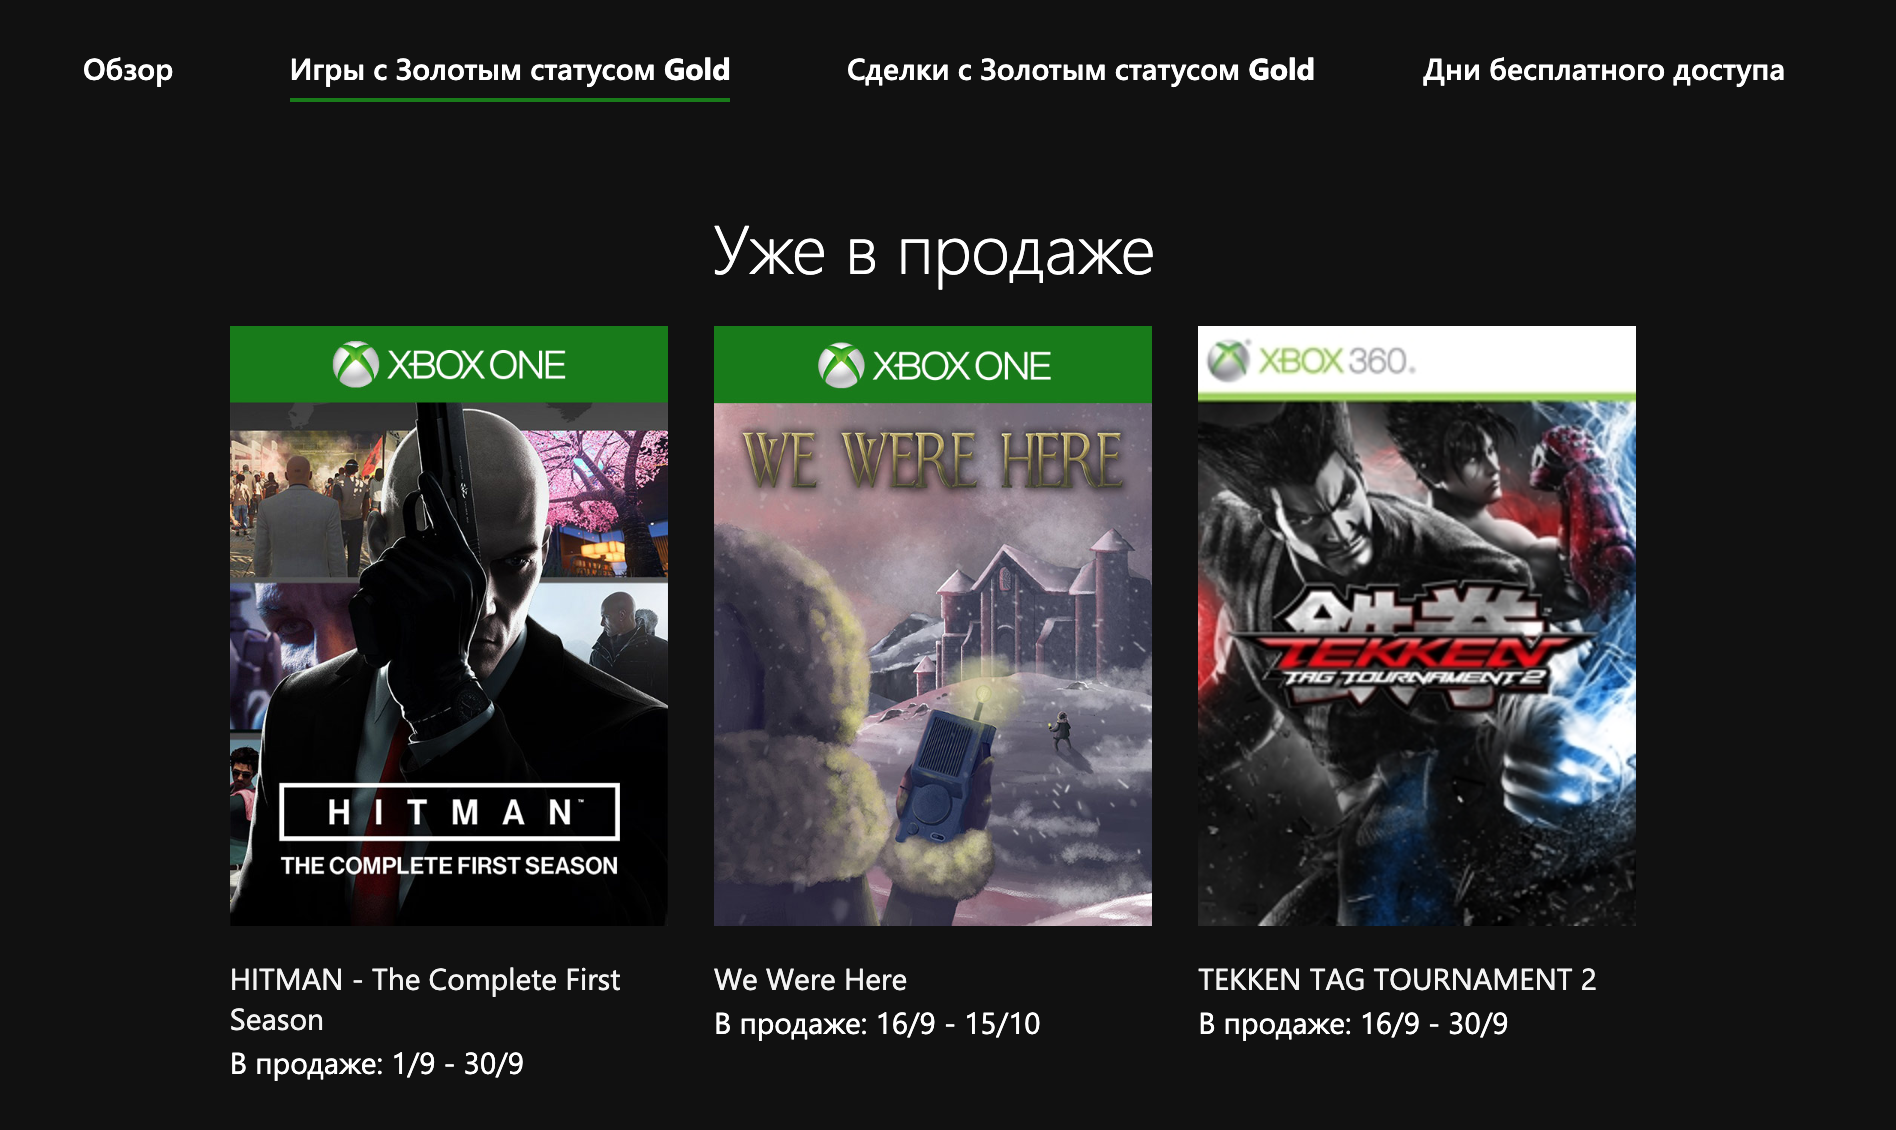 Games with a gold status is now only for statistics and advertising? [IMG]